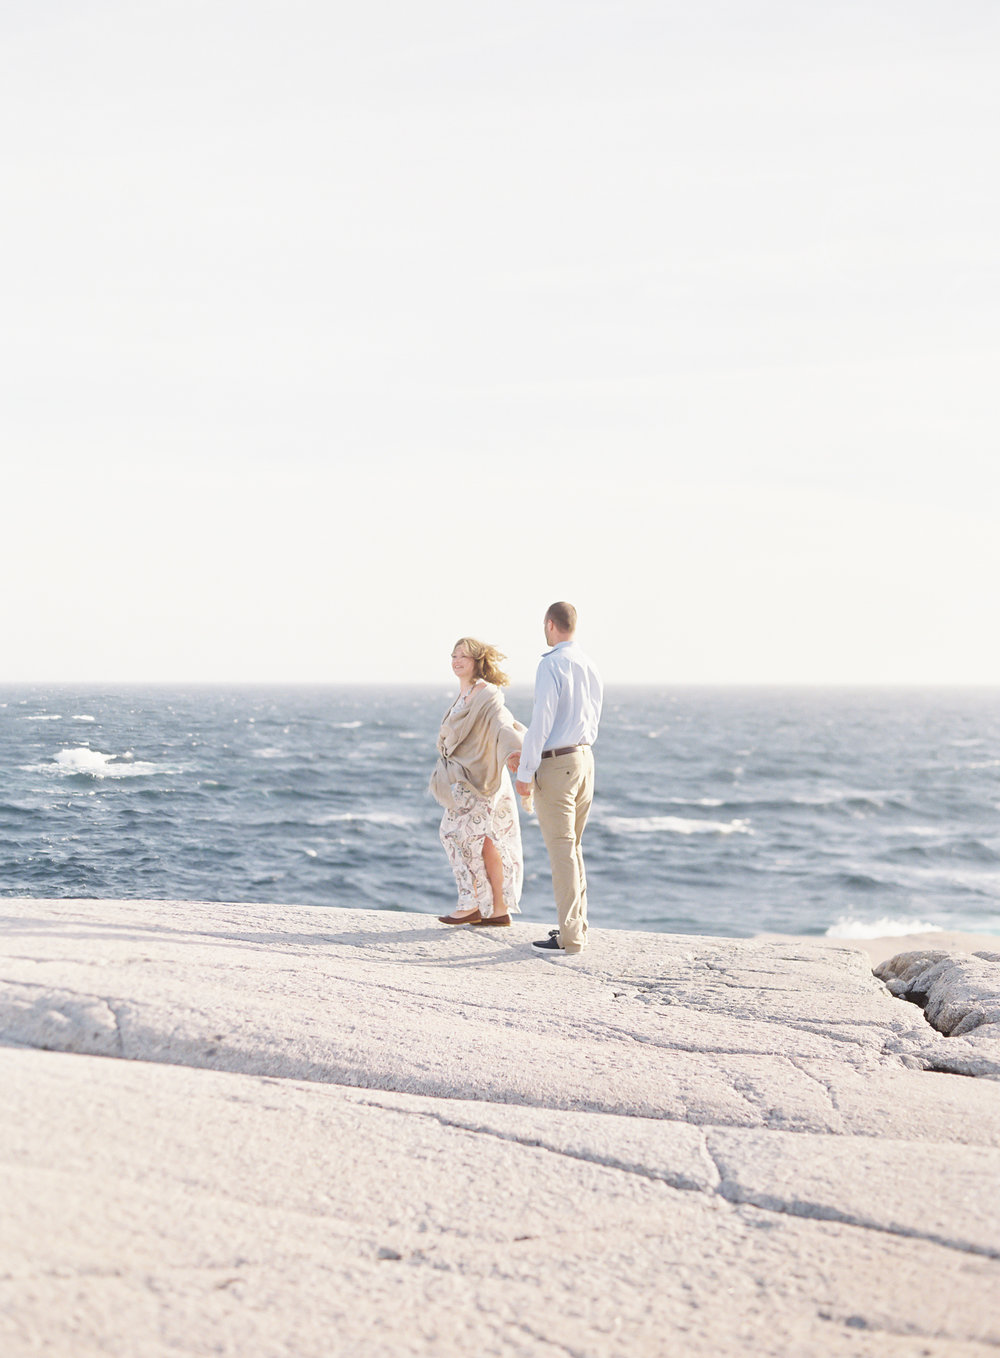 Jacqueline Anne Photography - Alex and Andrew Engagement at Peggy's Cove - Halifax-117.jpg